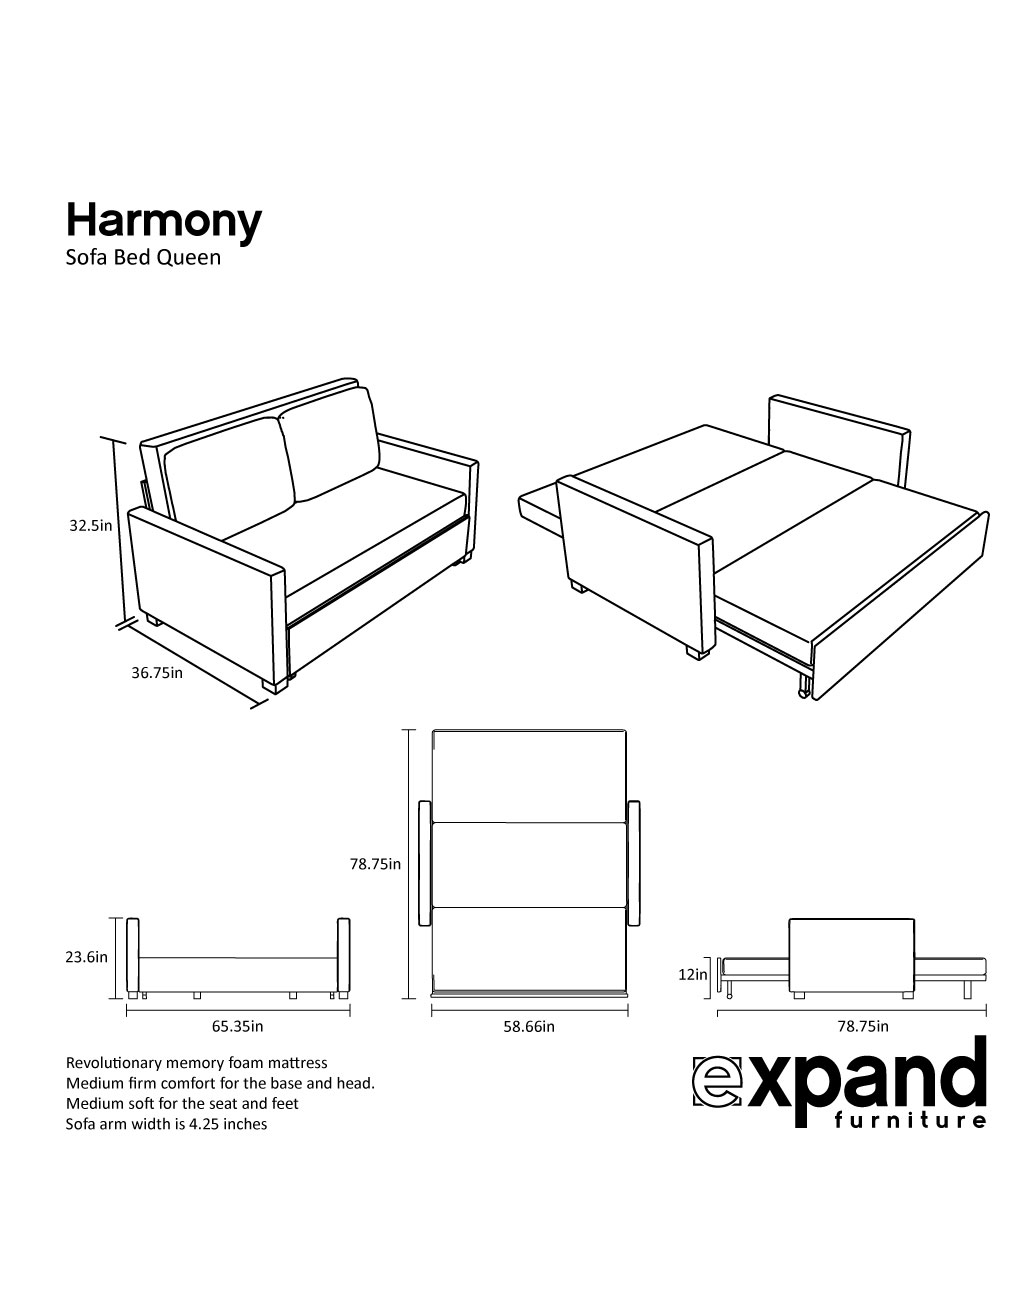 Harmony Queen Size Memory Foam Sofa Bed Expand Furniture Folding Tables Smarter Wall Beds E Savers